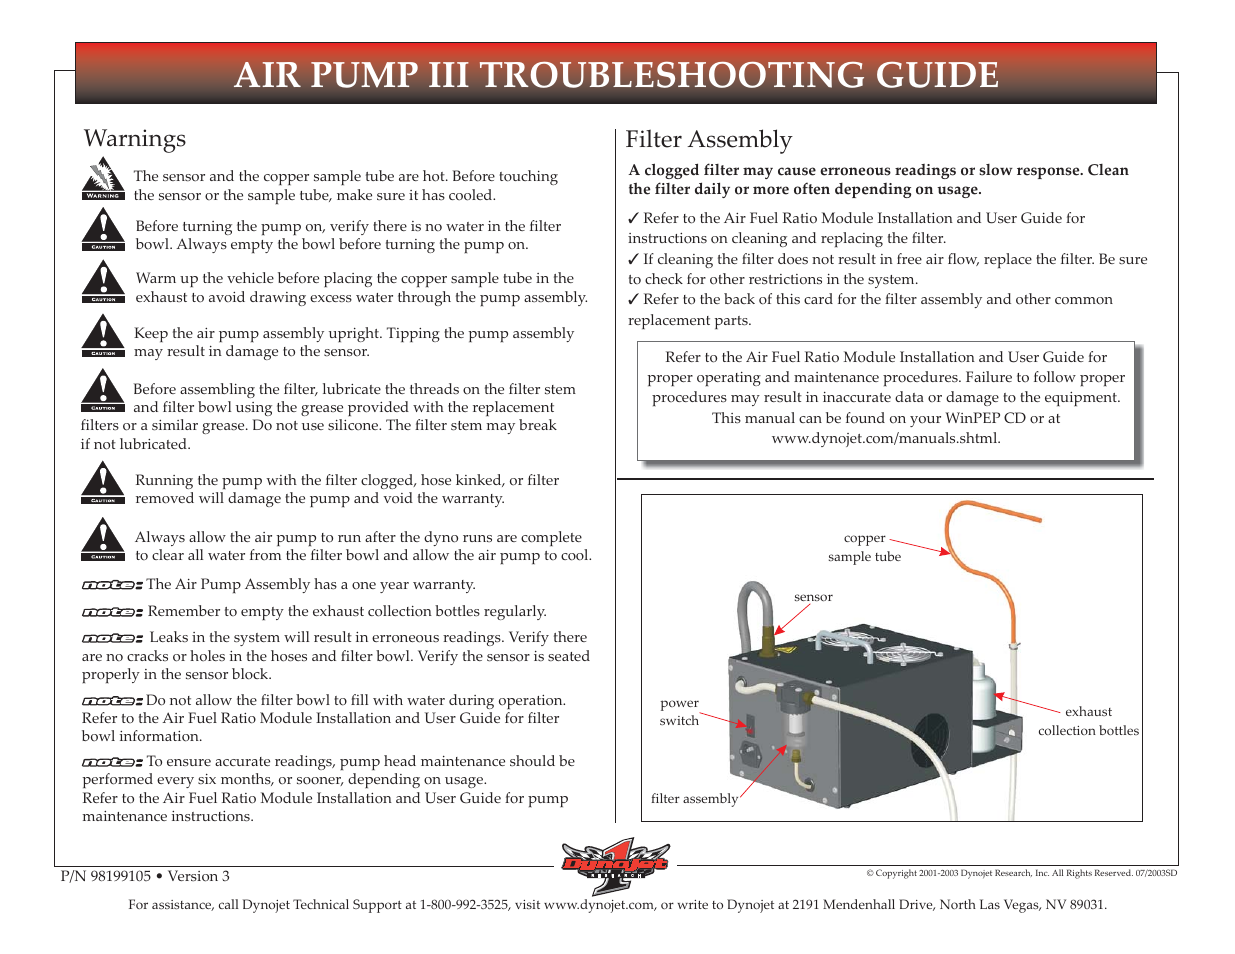 Stanadyne Pump Diagnostic Troubleshooting Manual Guide